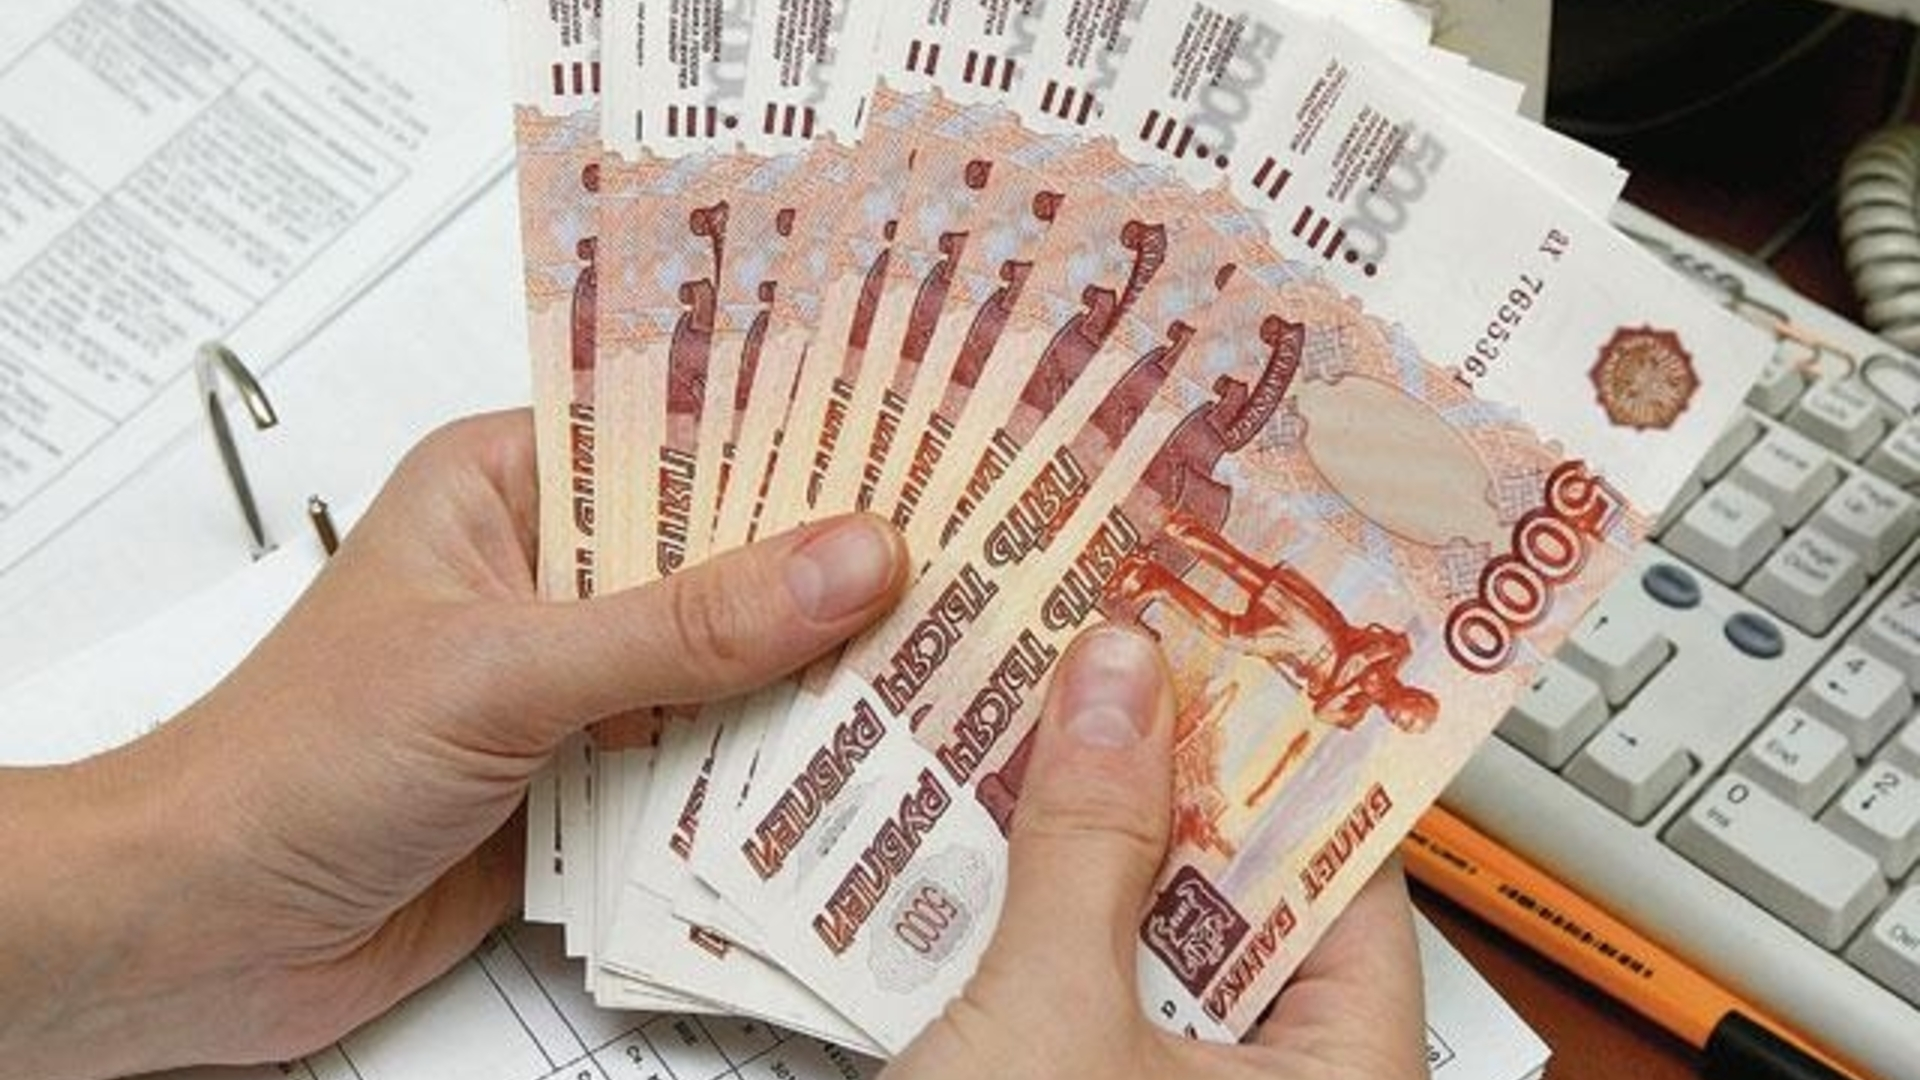 Russians_do_not_know_how_to_save_money_and_often_take_out_loans